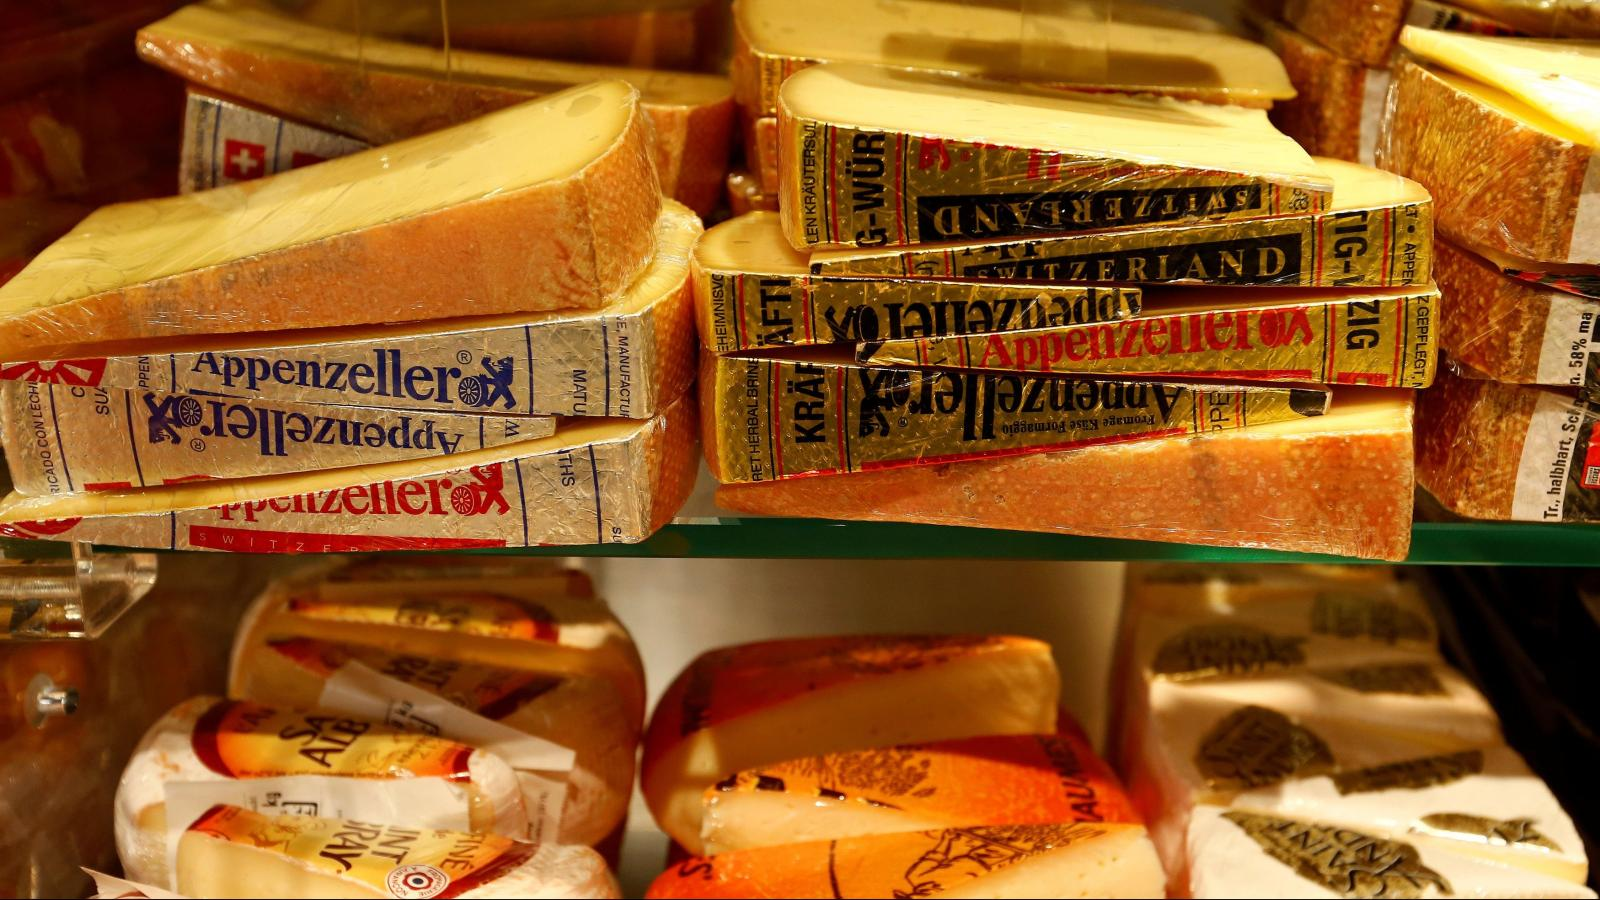 Is cheese bad for you? Five nutritionists give the same